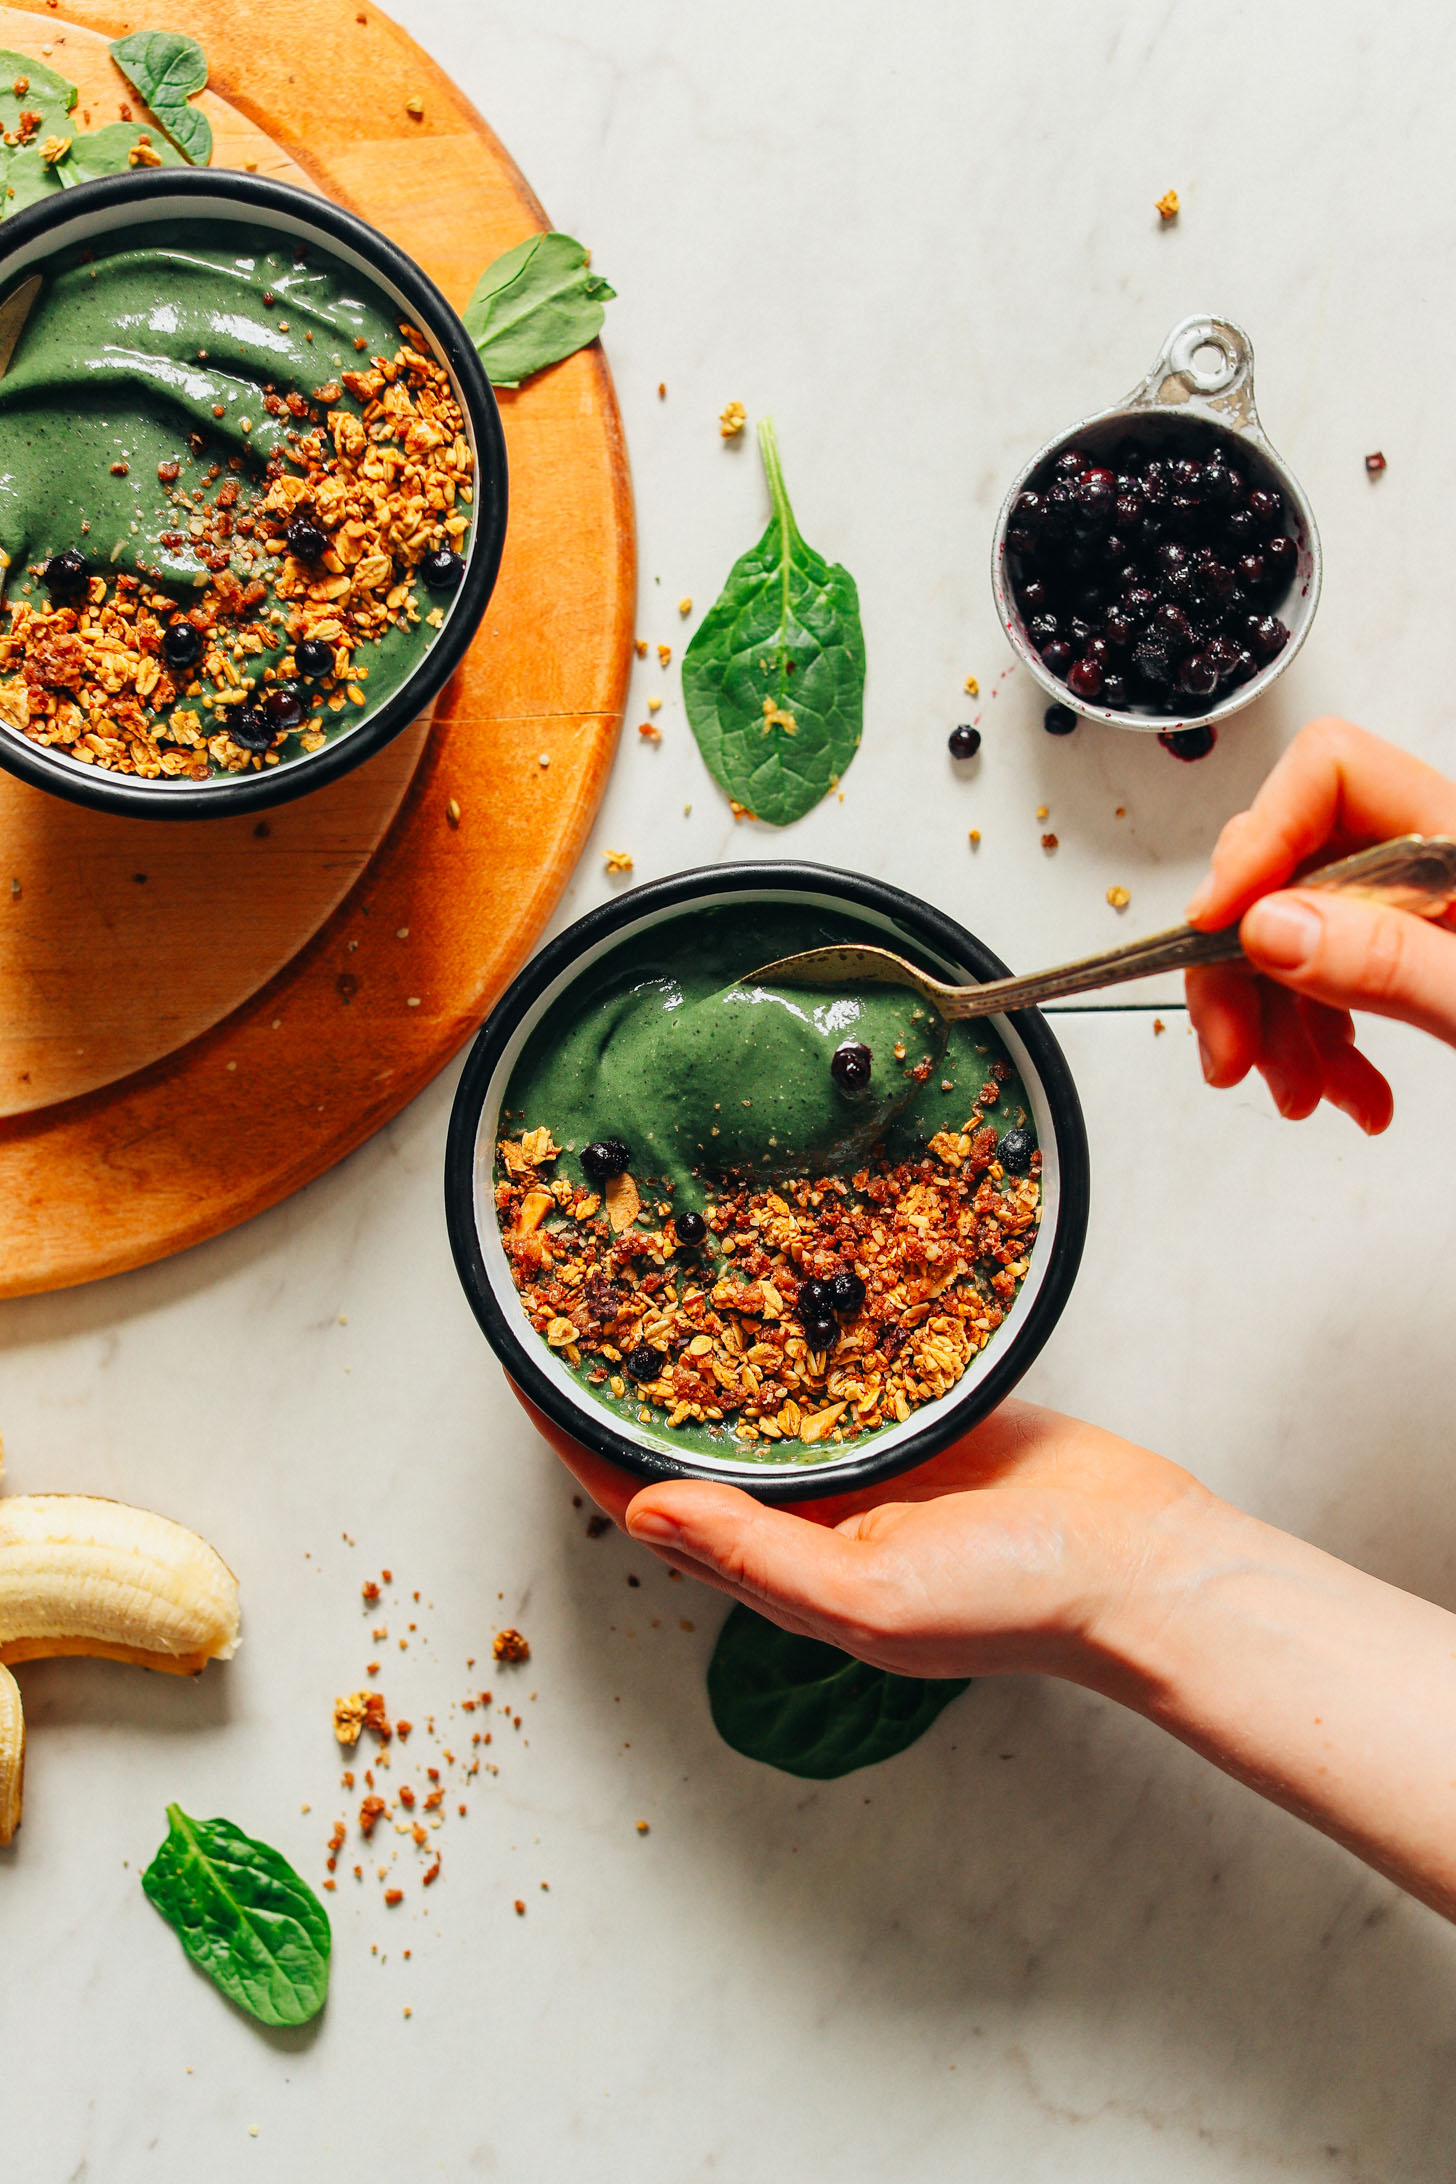 Grabbing a spoonful of our vegan Peanut Butter Banana Super Green Smoothie Bowl made with spirulina